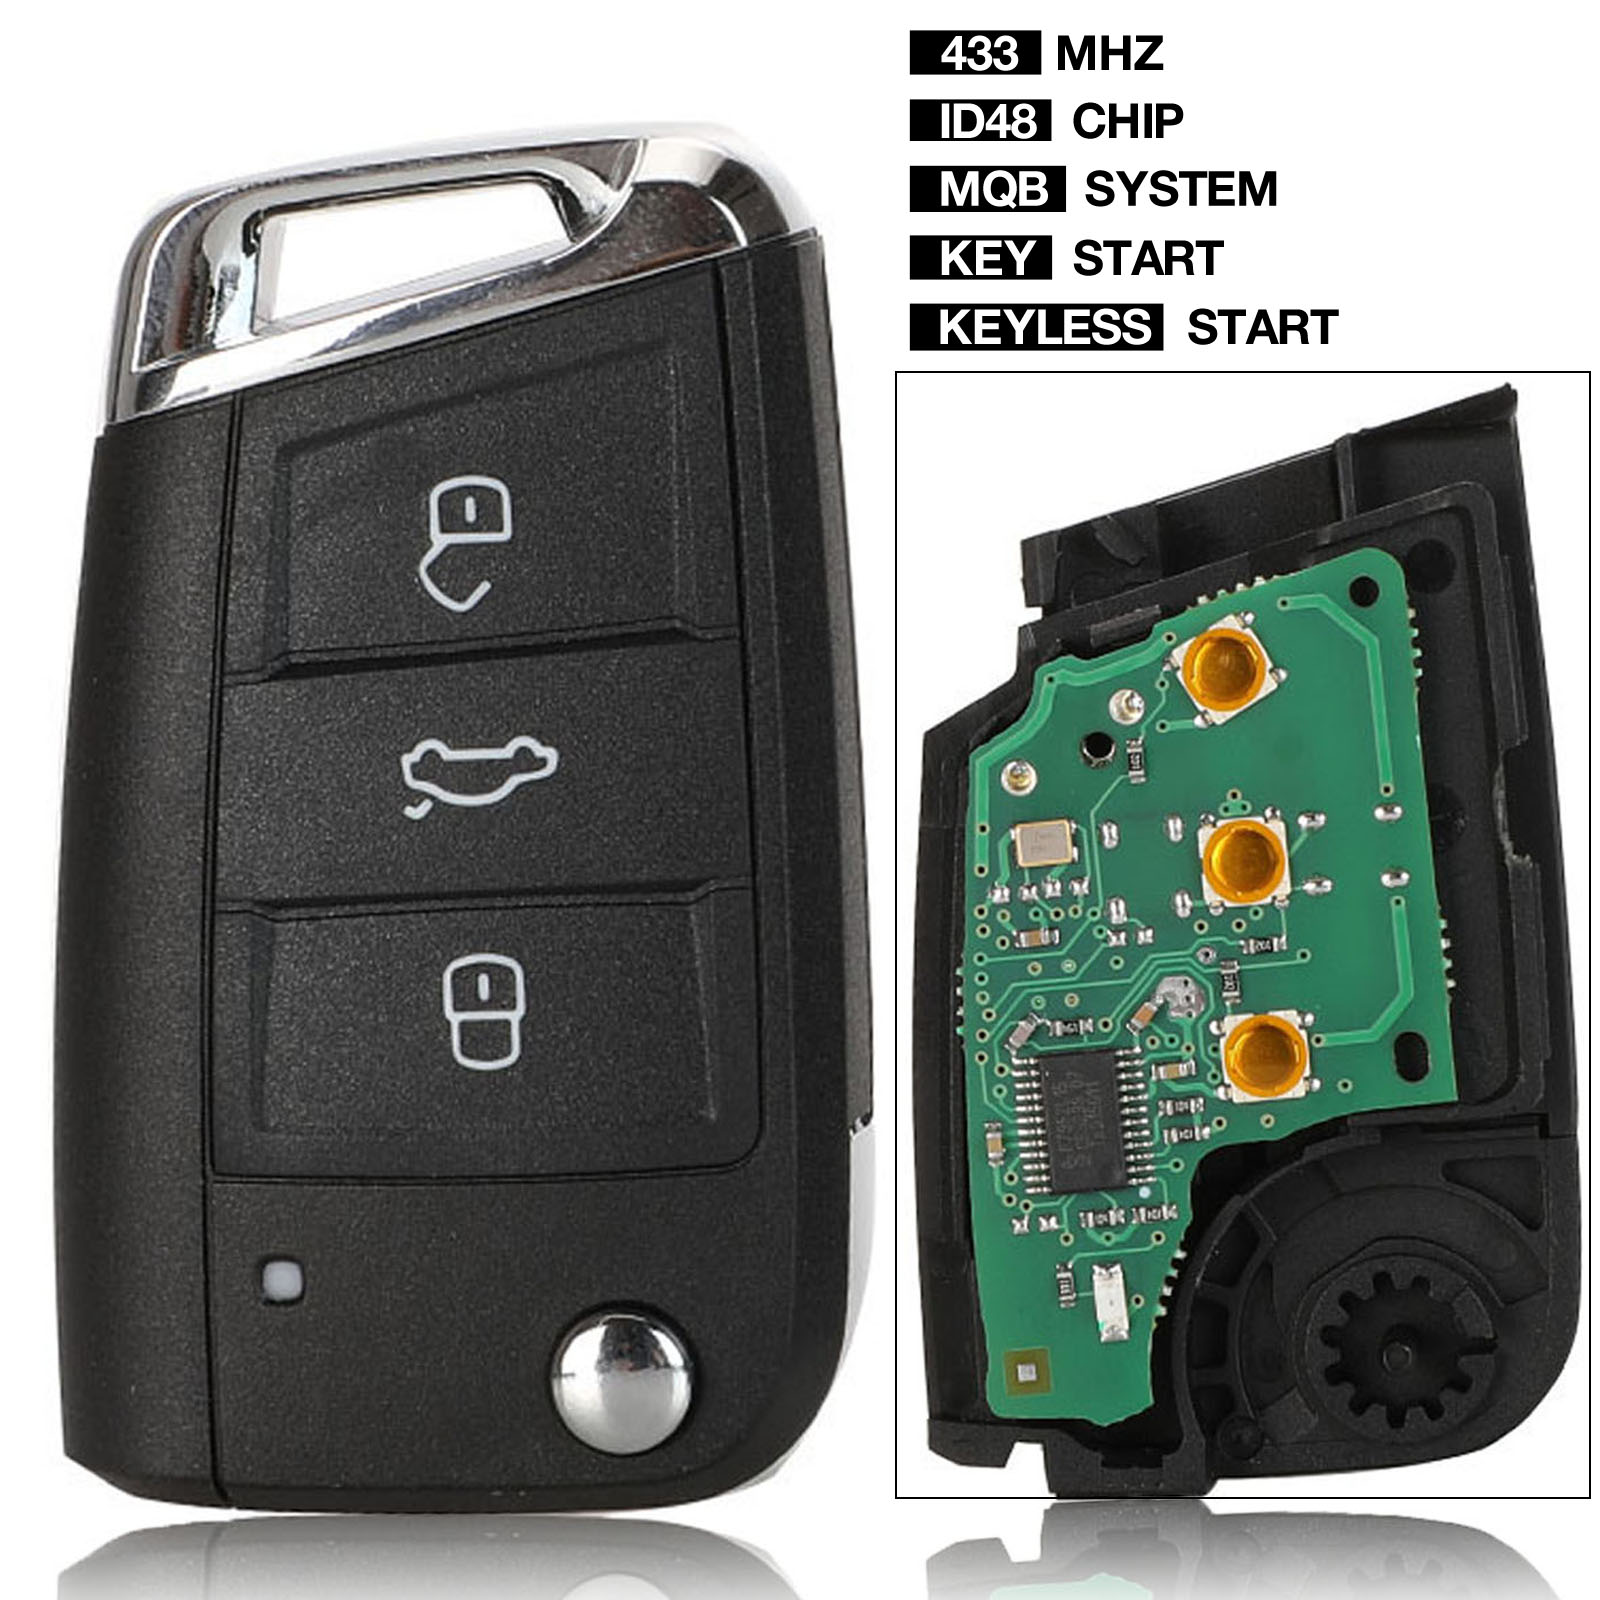 kutery Keyless-start/<font><b>key</b></font> start <font><b>Remote</b></font> <font><b>Key</b></font> 434MHz MQB for VW/VOLKSWAGEN <font><b>Golf</b></font> <font><b>7</b></font> MK7 Touran Polo Tiguan image